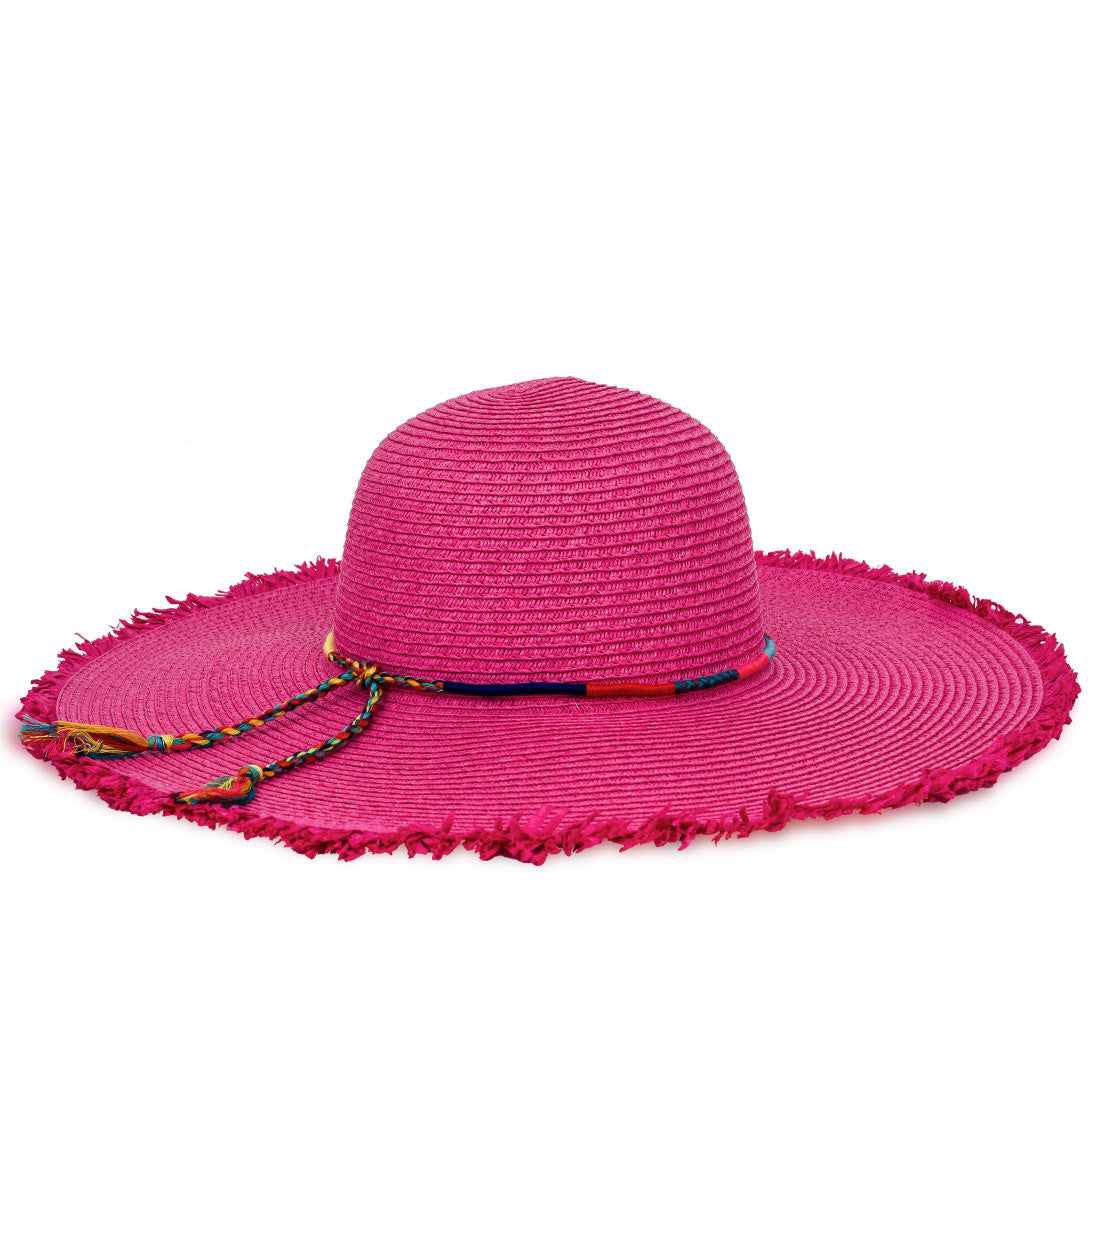 Friendship Bracelet Banded Floppy Hat - Just Jamie